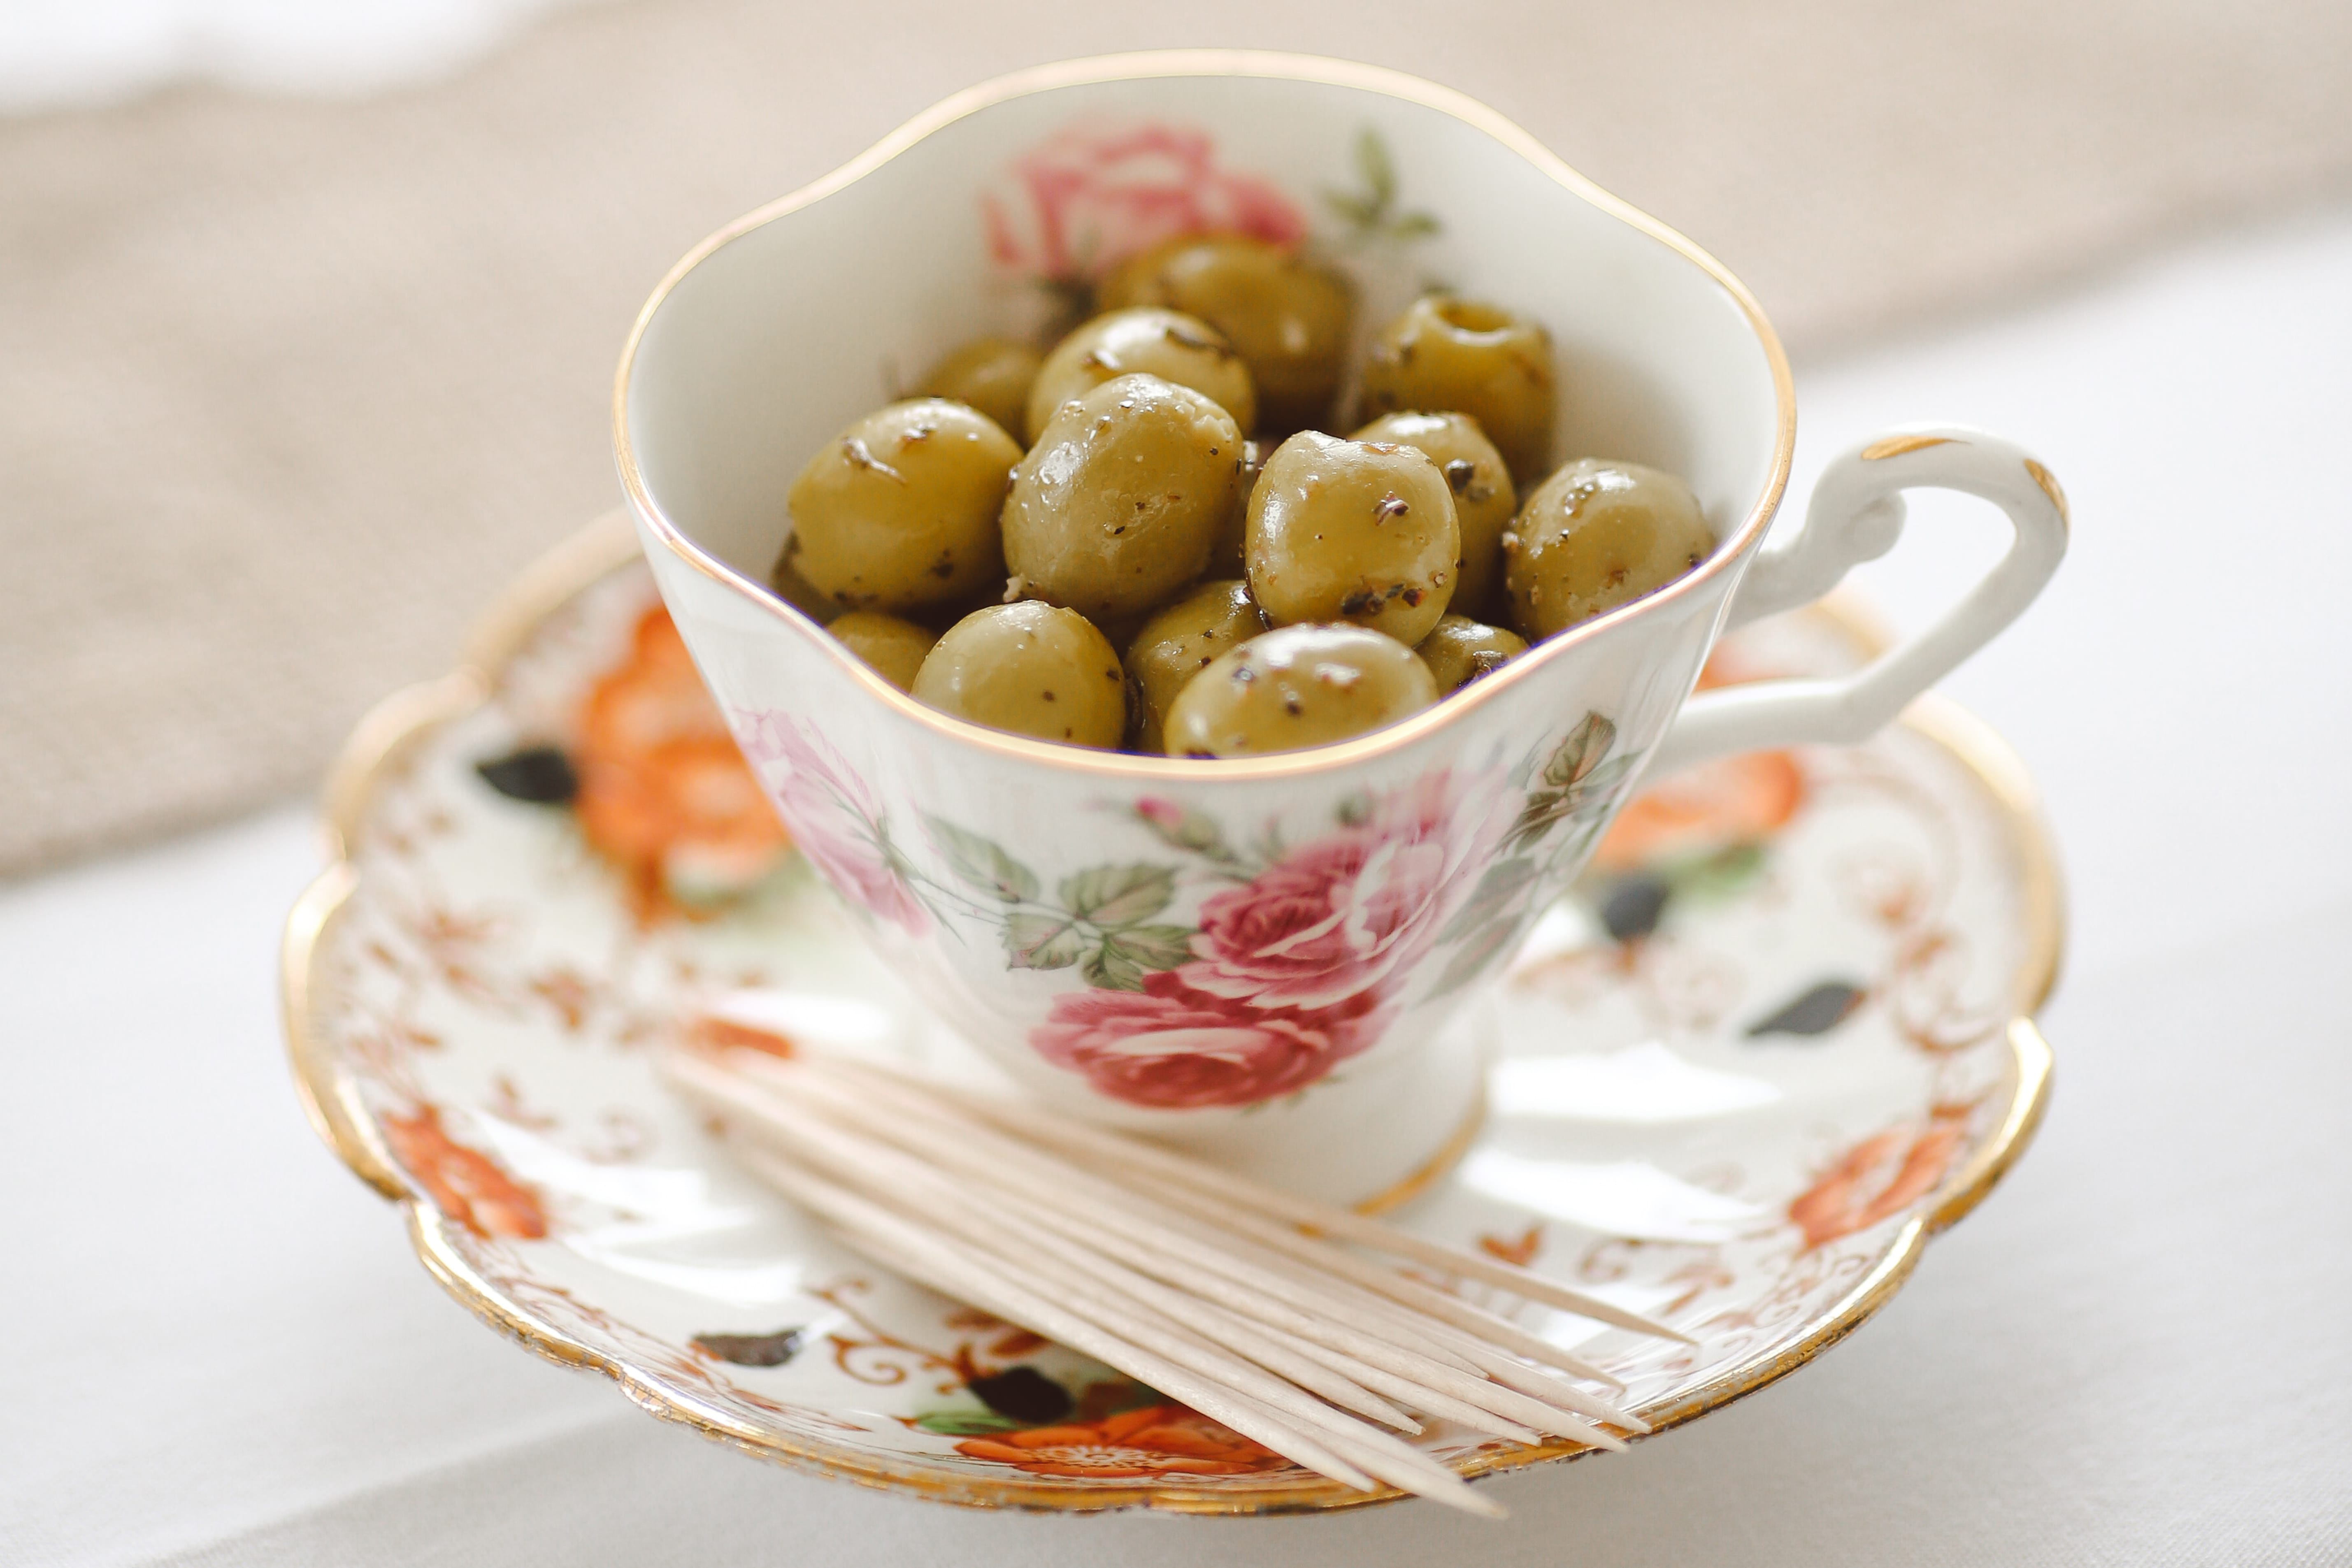 olives are one of the most healthy spanish dishes